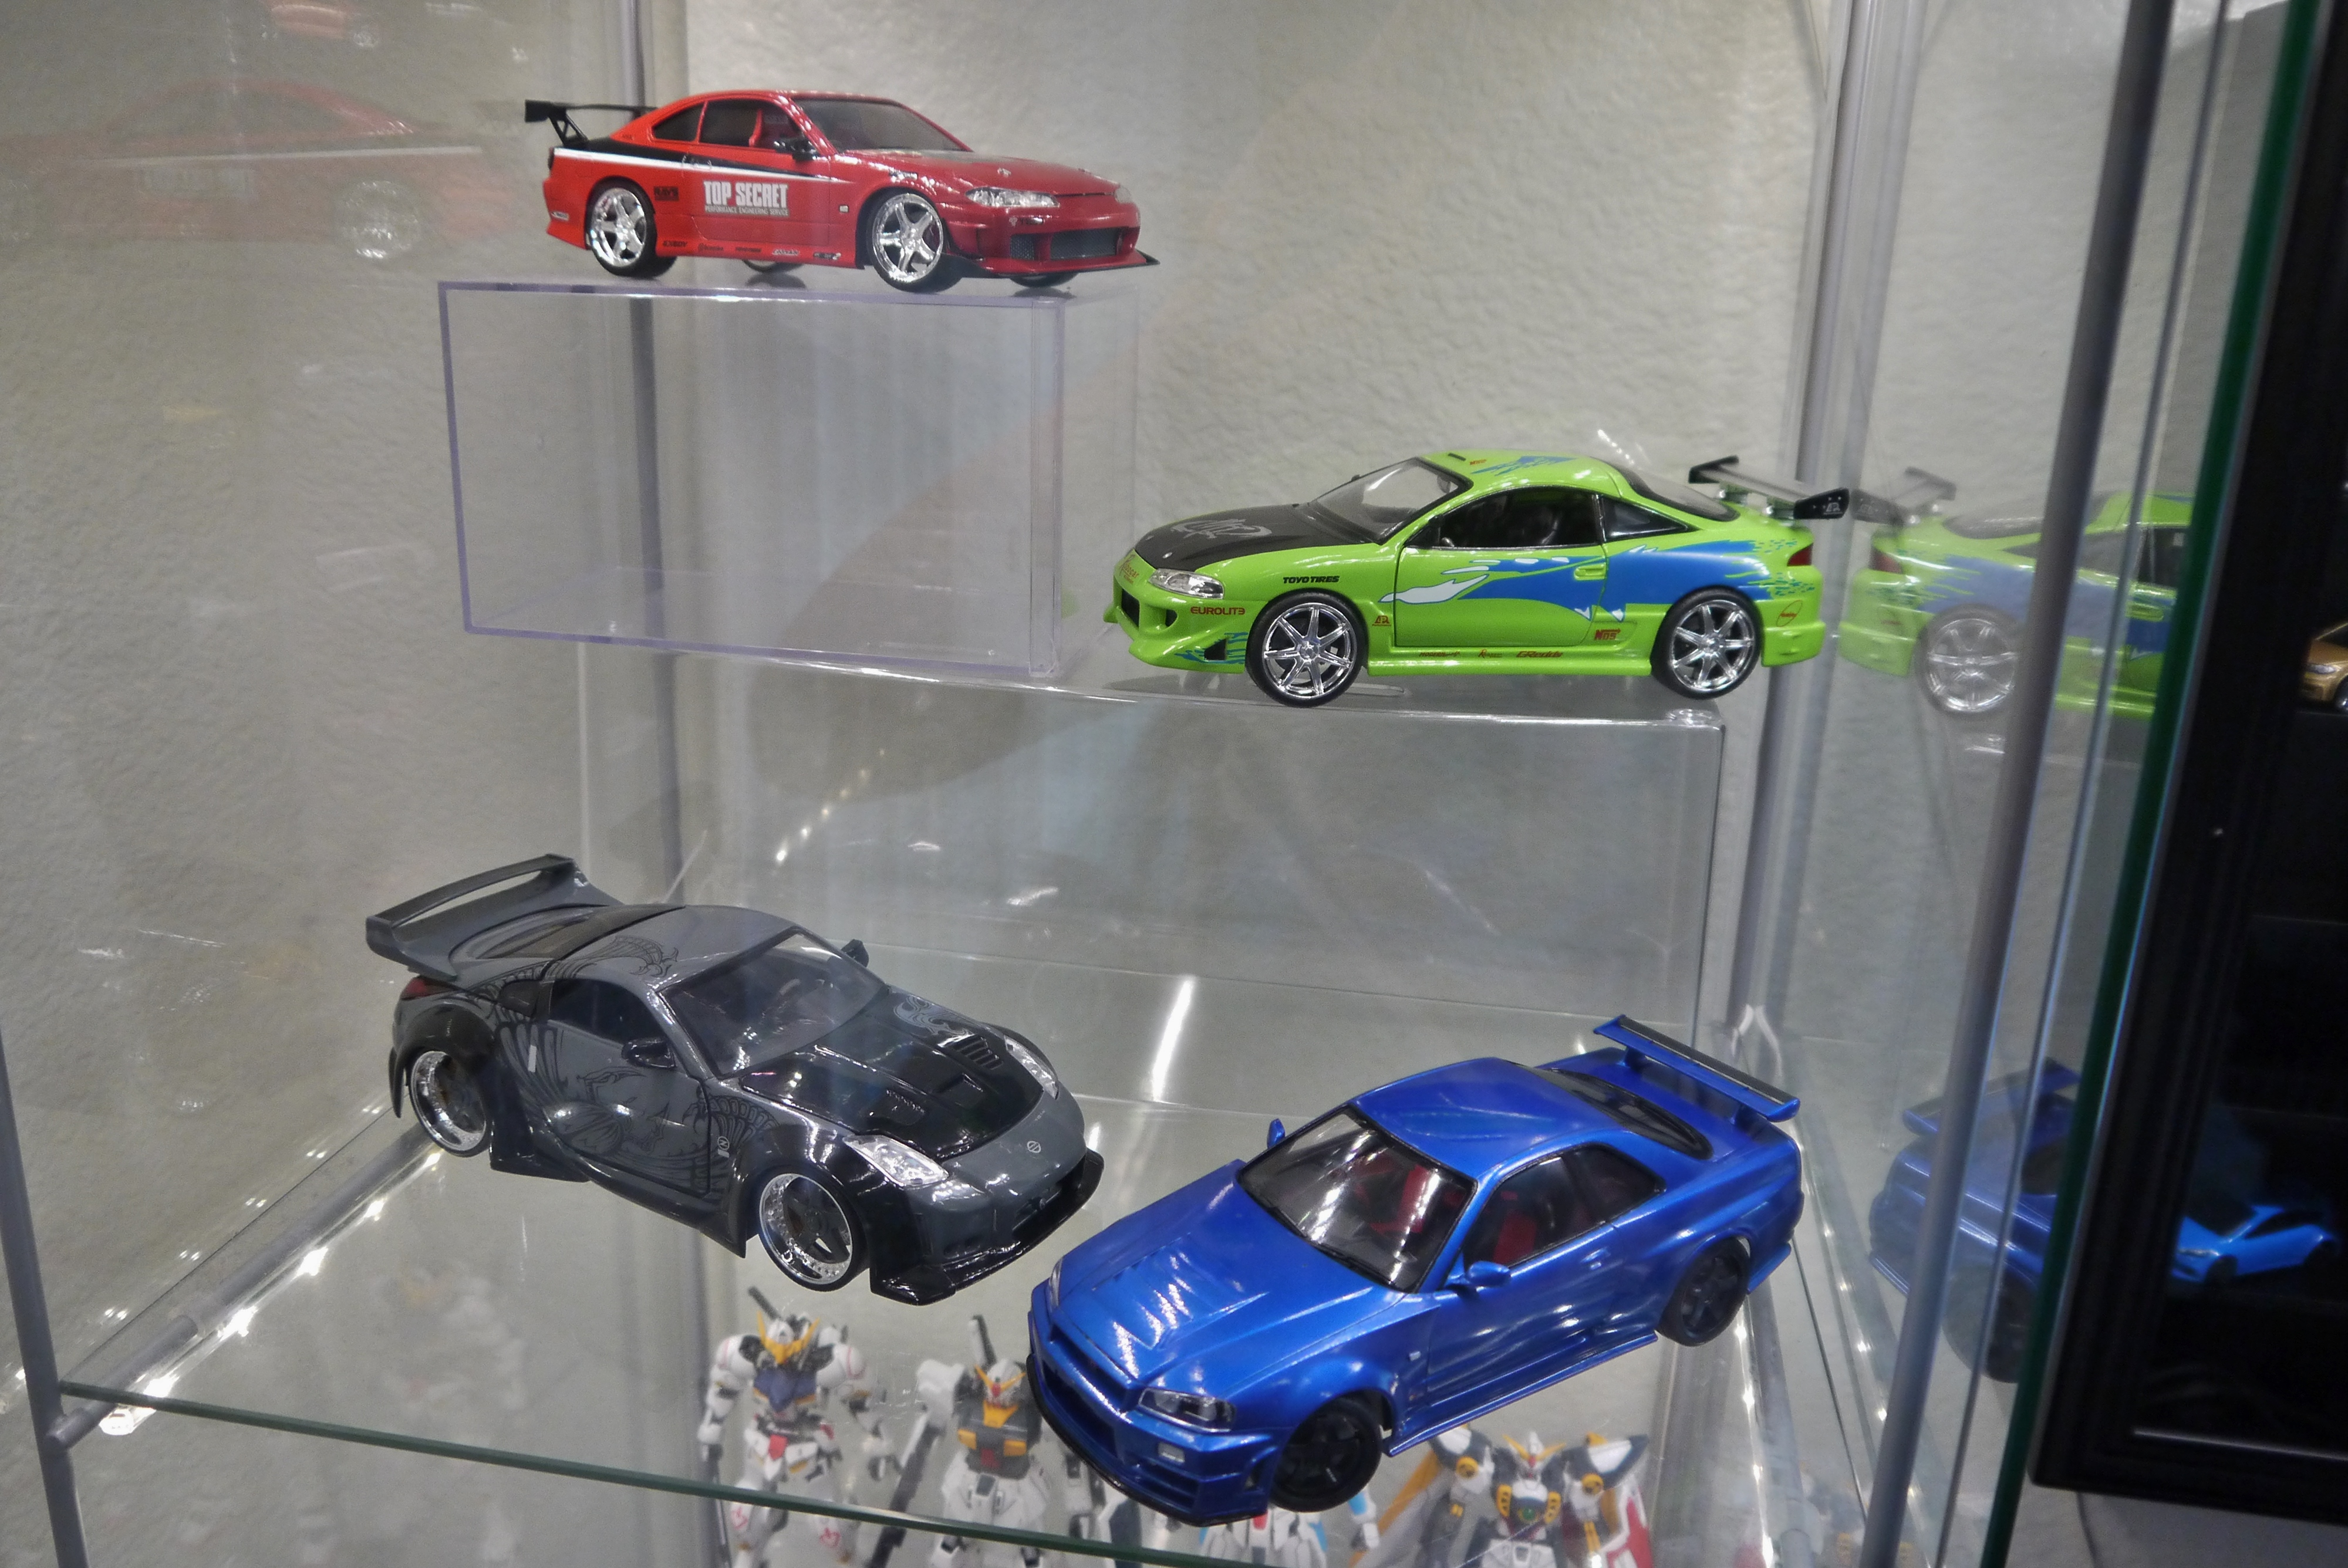 The Awkward Thing Is Though U2013 I Already Own A Fast And Furious Eclipse. The  Only Other Comparably Sized One Released Is From Jada Toys U2013 A Diecast  Model ...